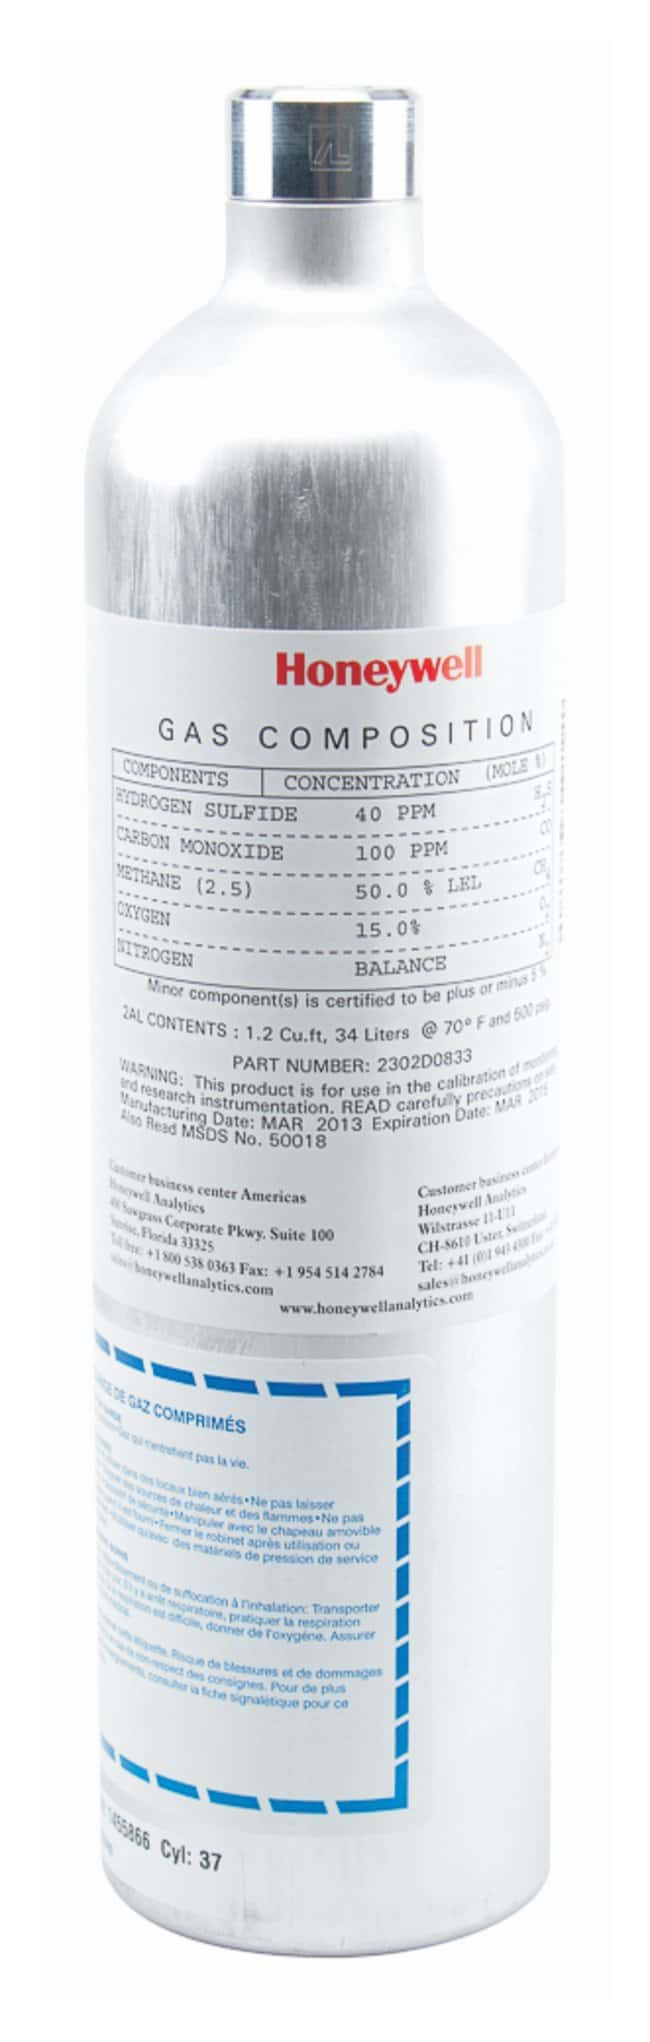 Honeywell Analytics CalGas Calibration Gases:Gloves, Glasses and Safety:Chemical